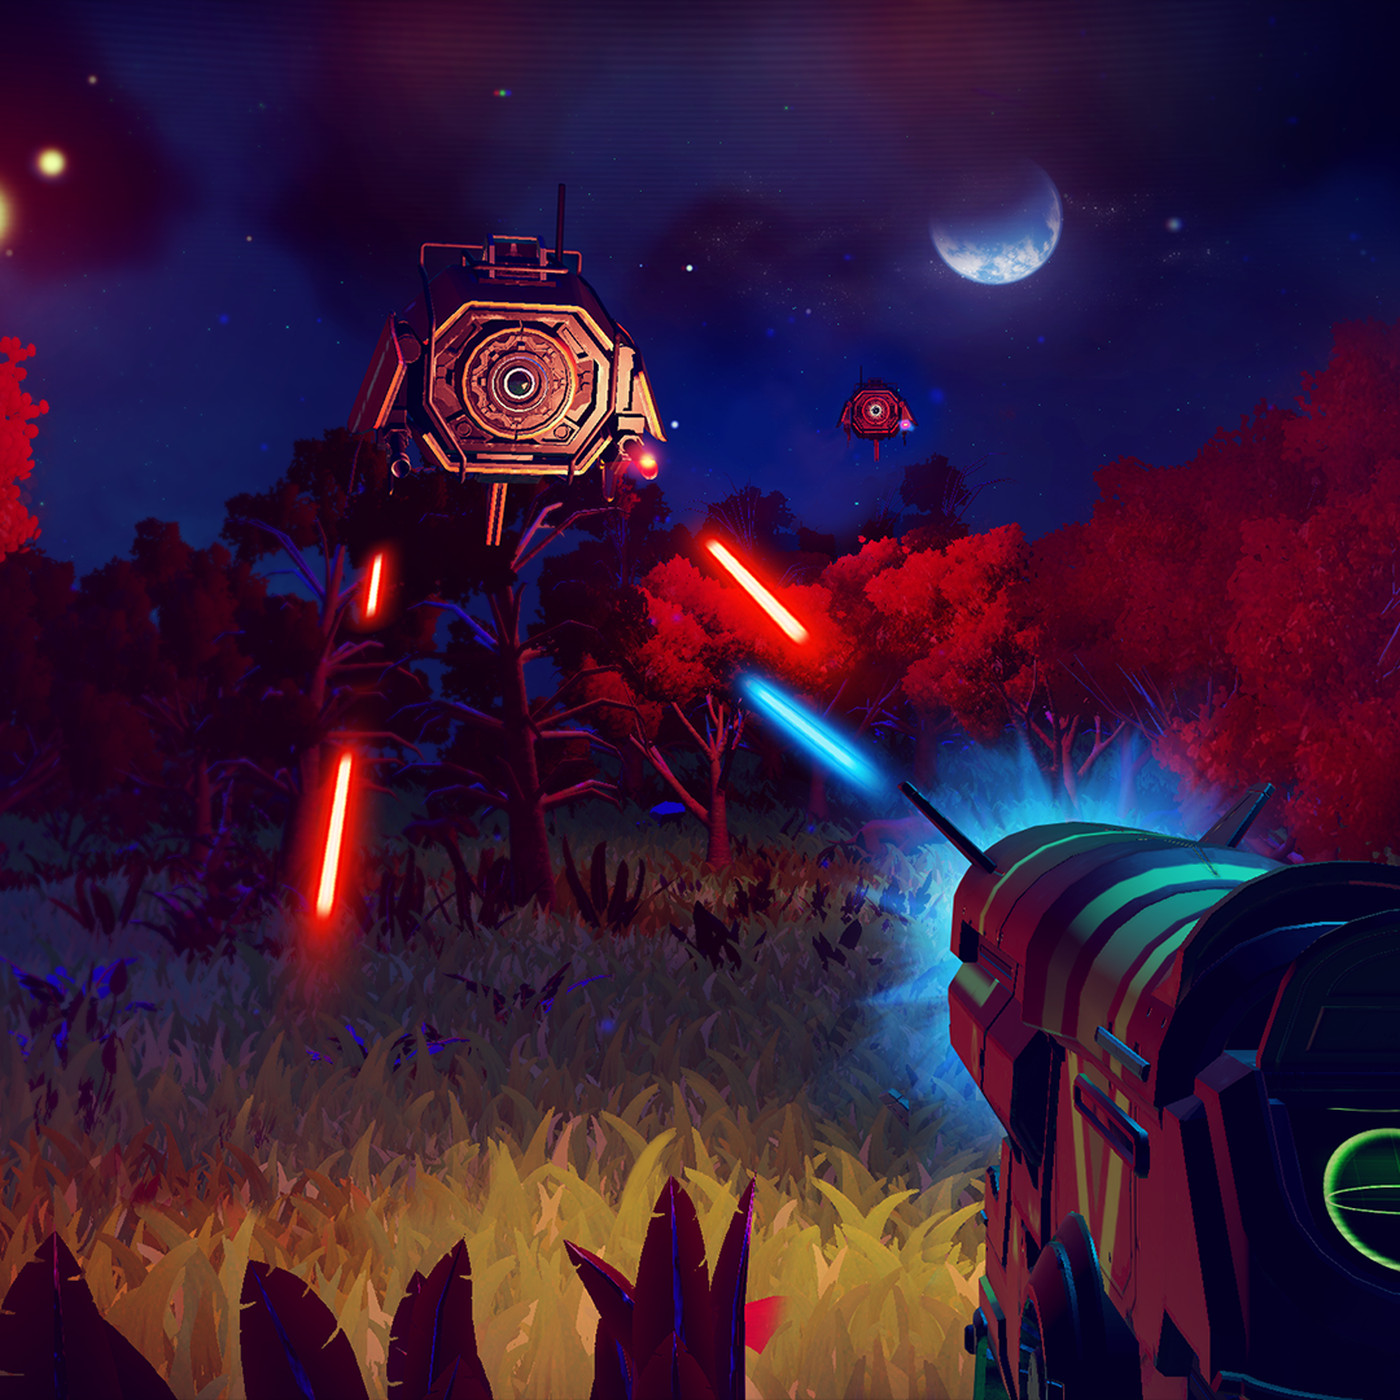 No Man's Sky: Music for an Infinite Universe is the perfect